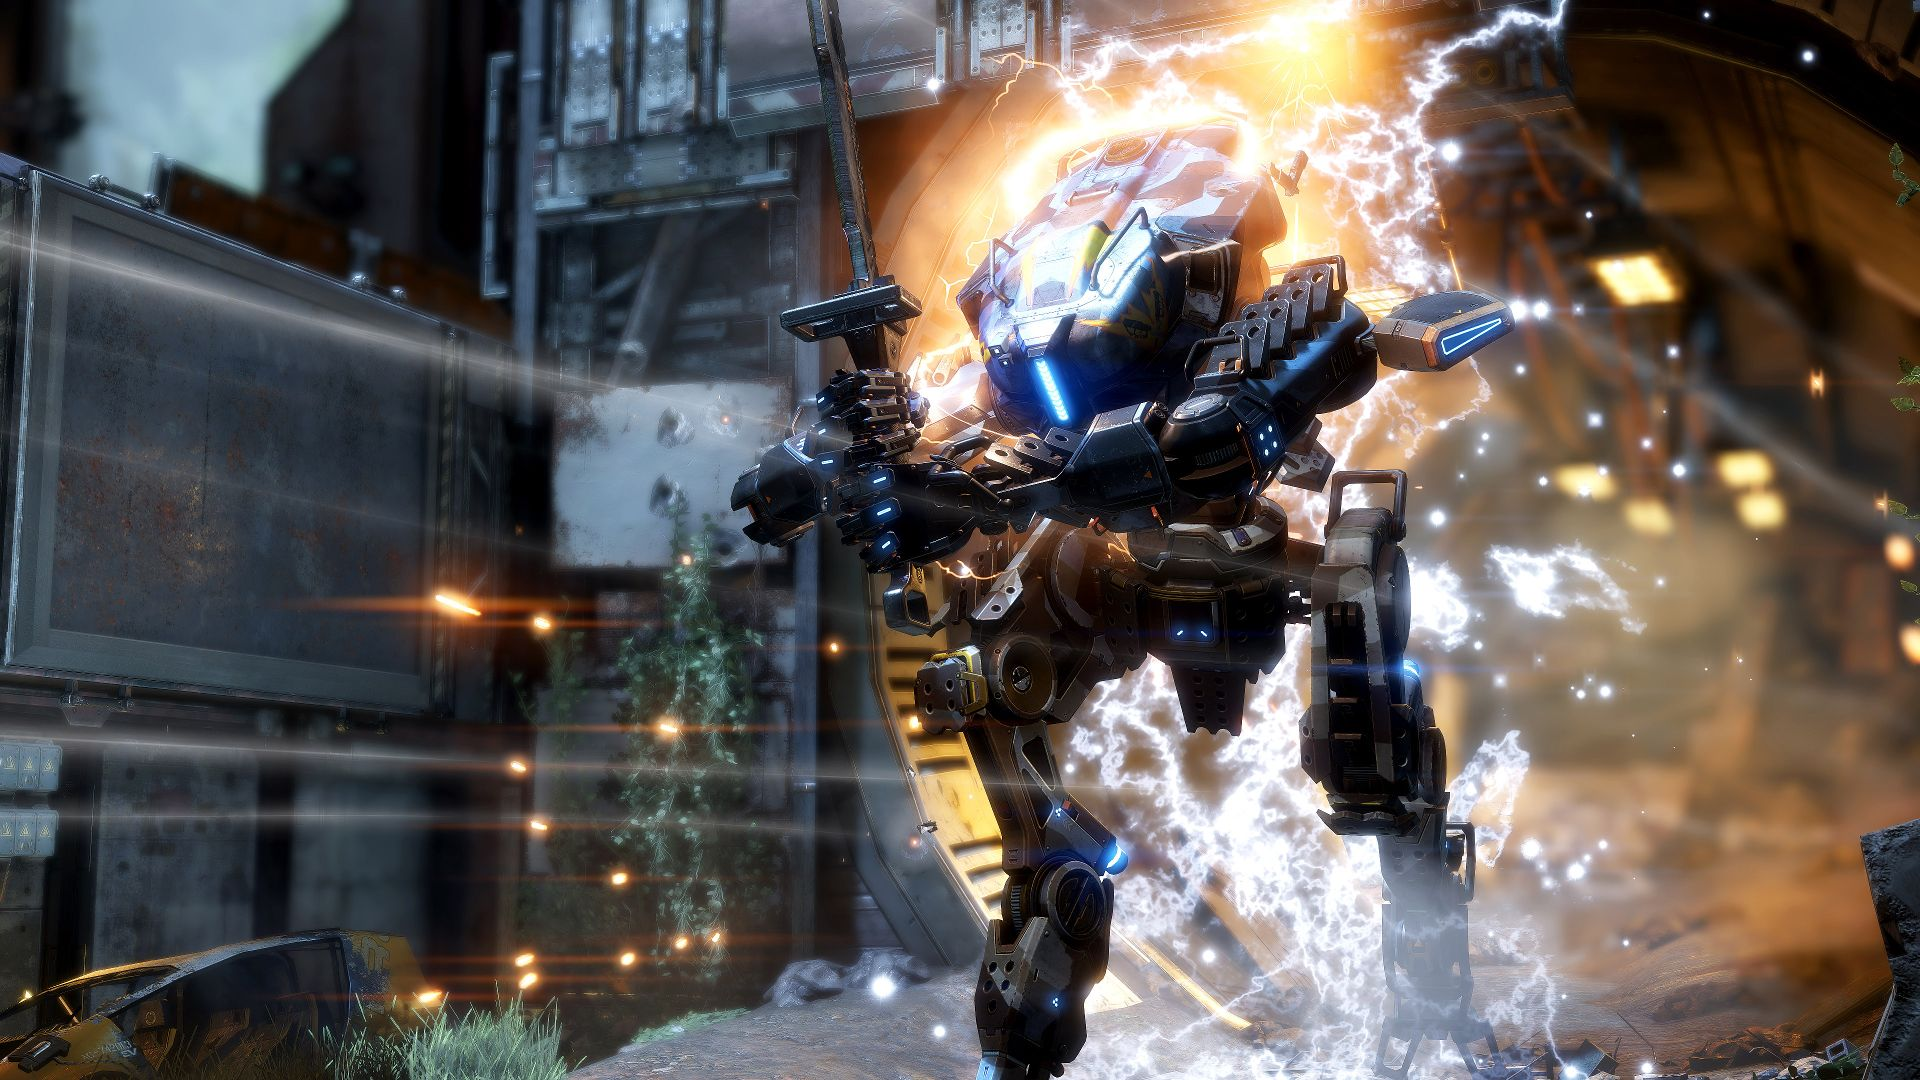 Free Animated Fall Desktop Wallpaper Titanfall 2 Monarch Reigns Wallpapers High Quality